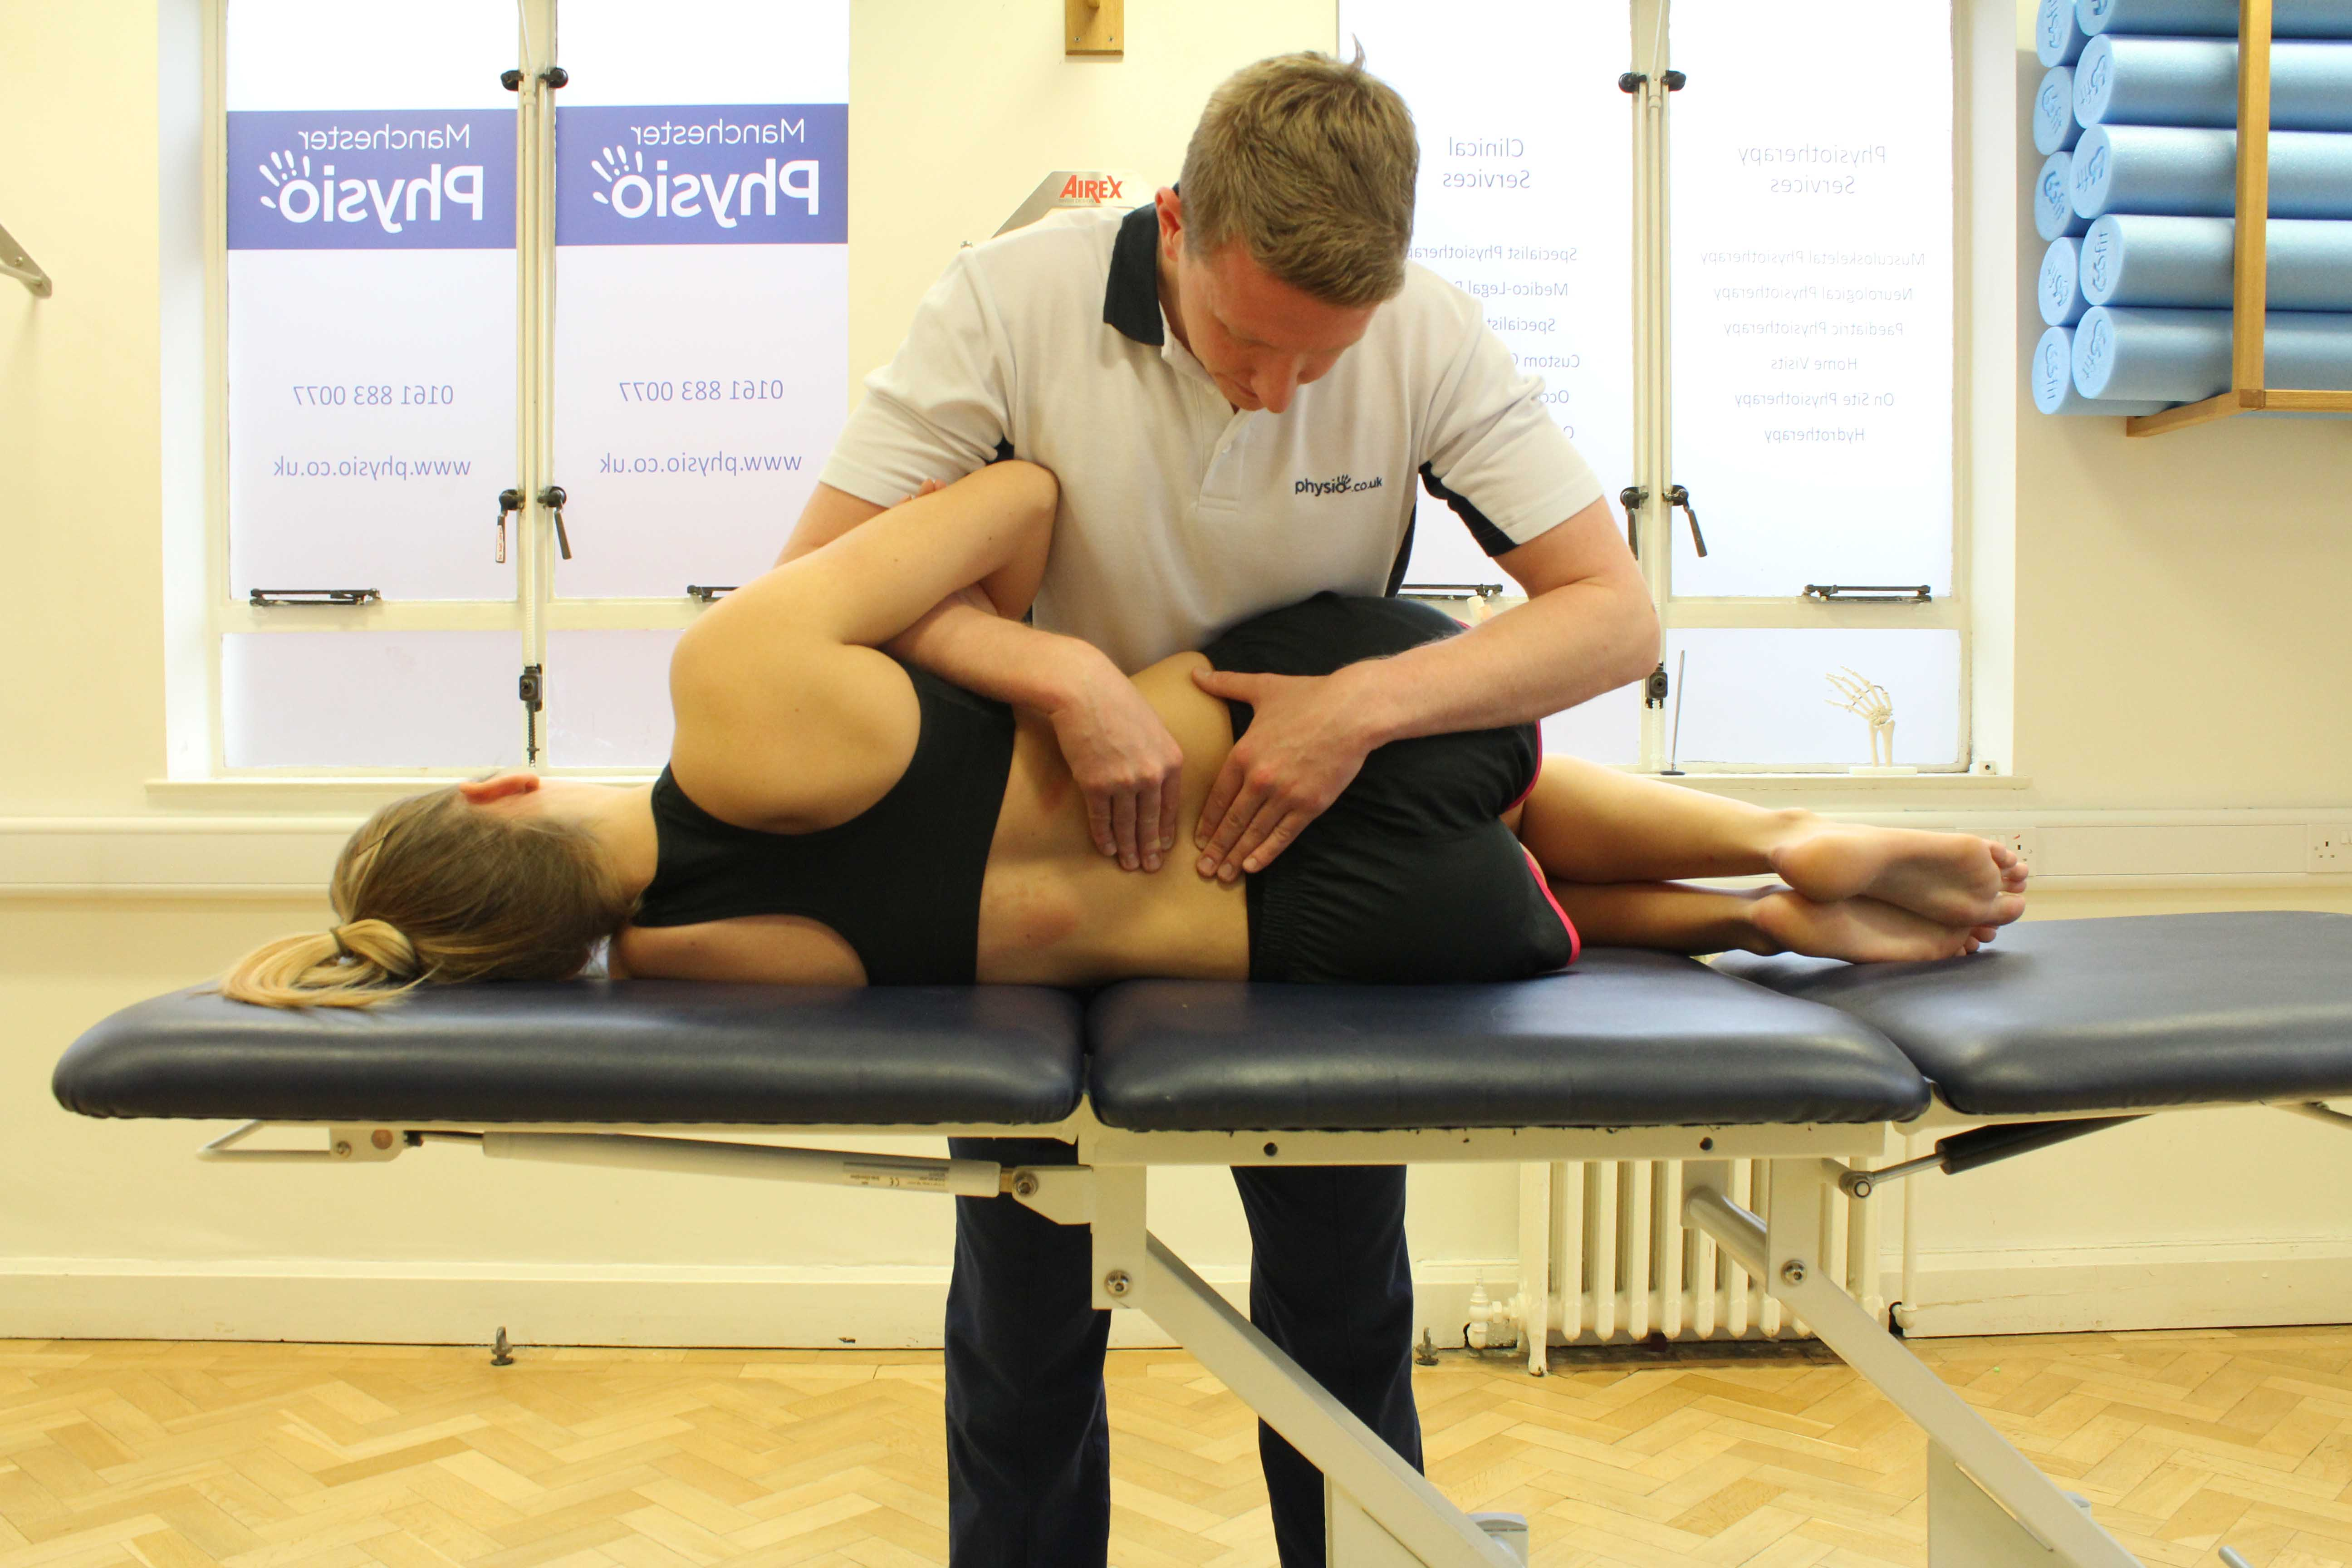 Mobilisation of the vertebrea in the lower back